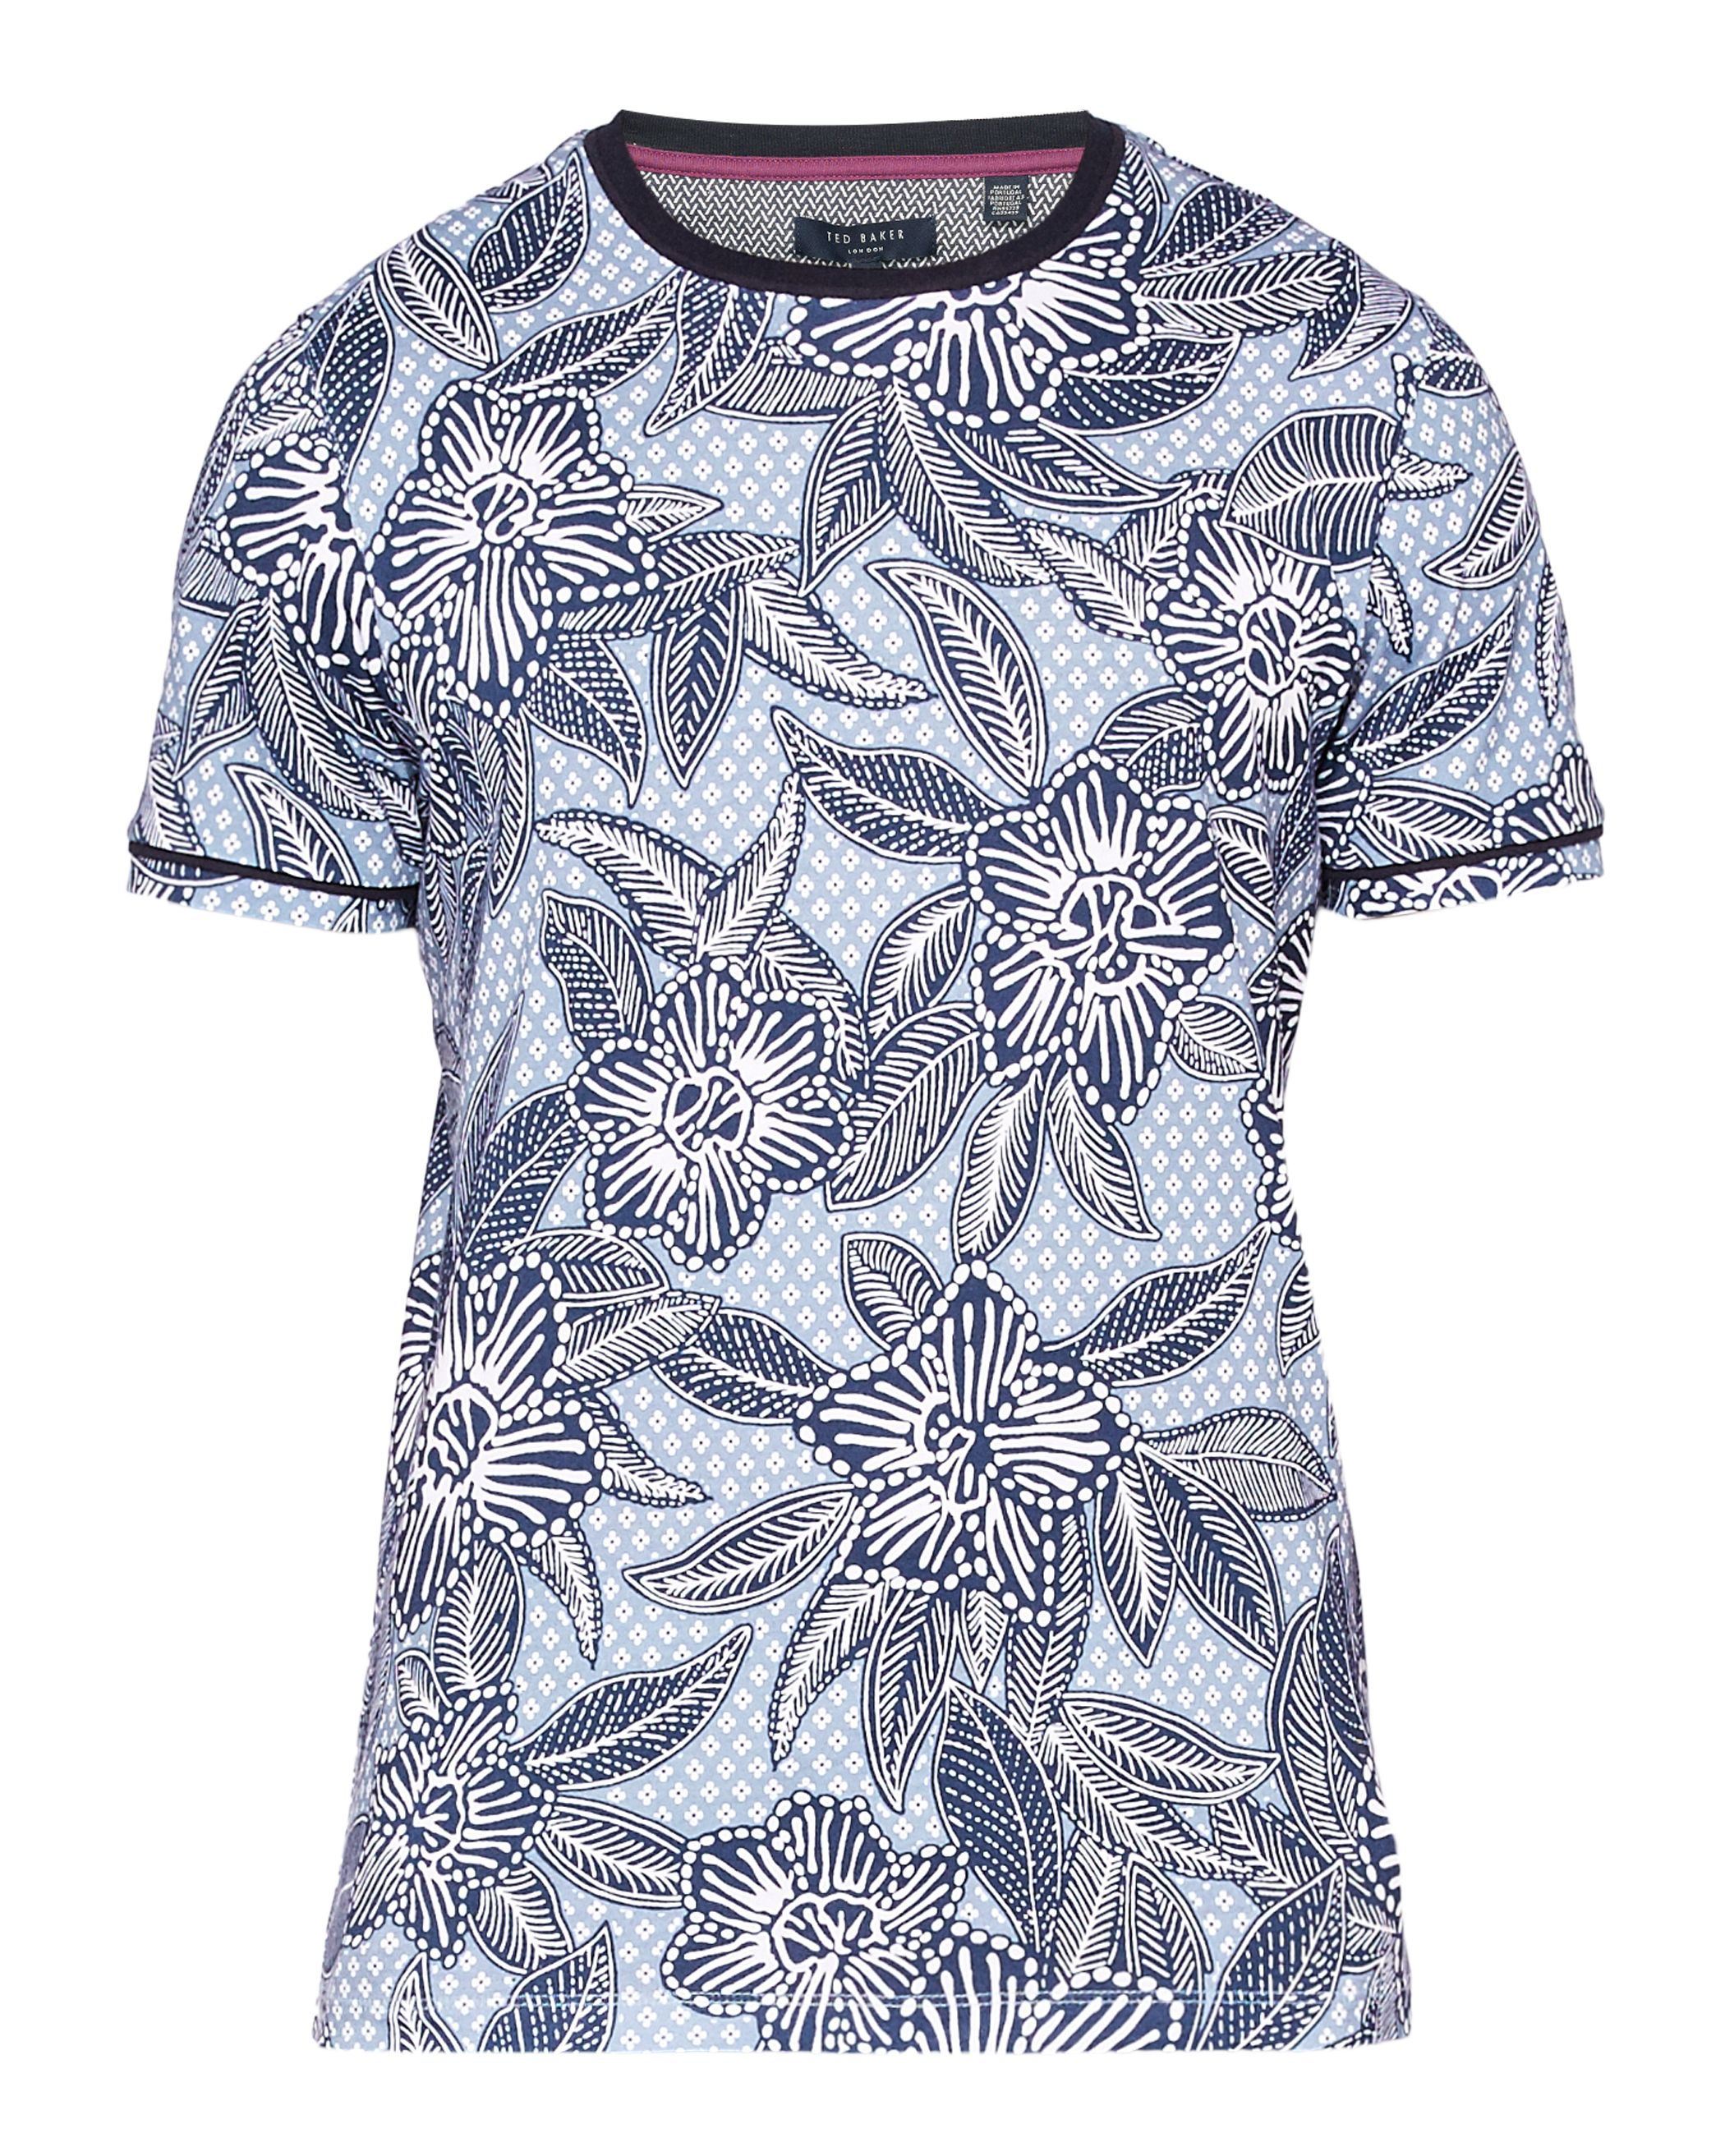 Men's Ted Baker Fenosi floral cotton t-shirt, Green